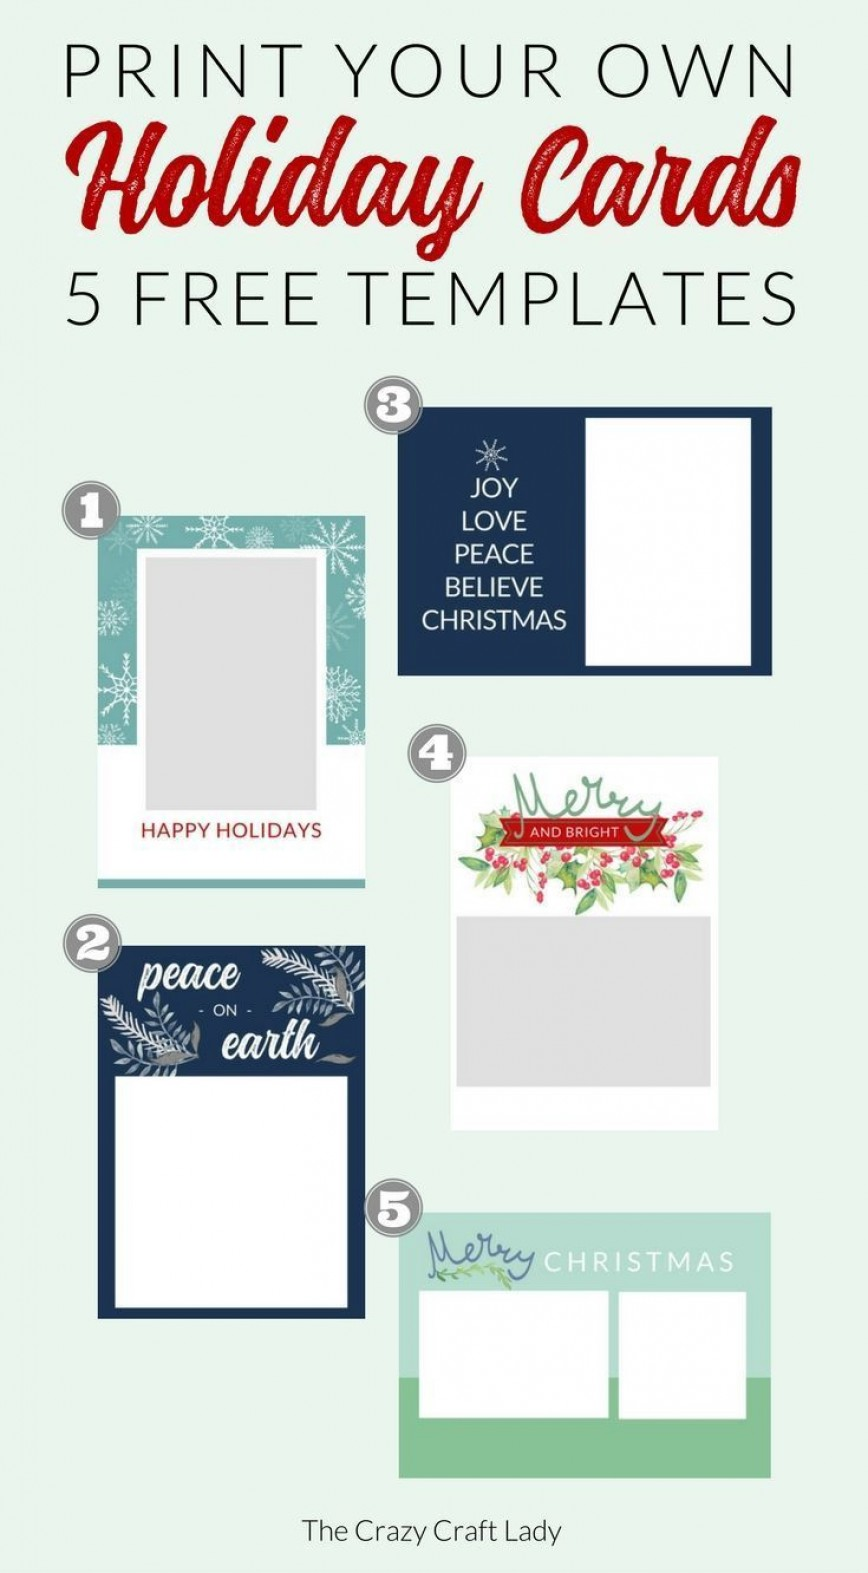 000 Stunning Free Holiday Card Template Photo  Templates For Word